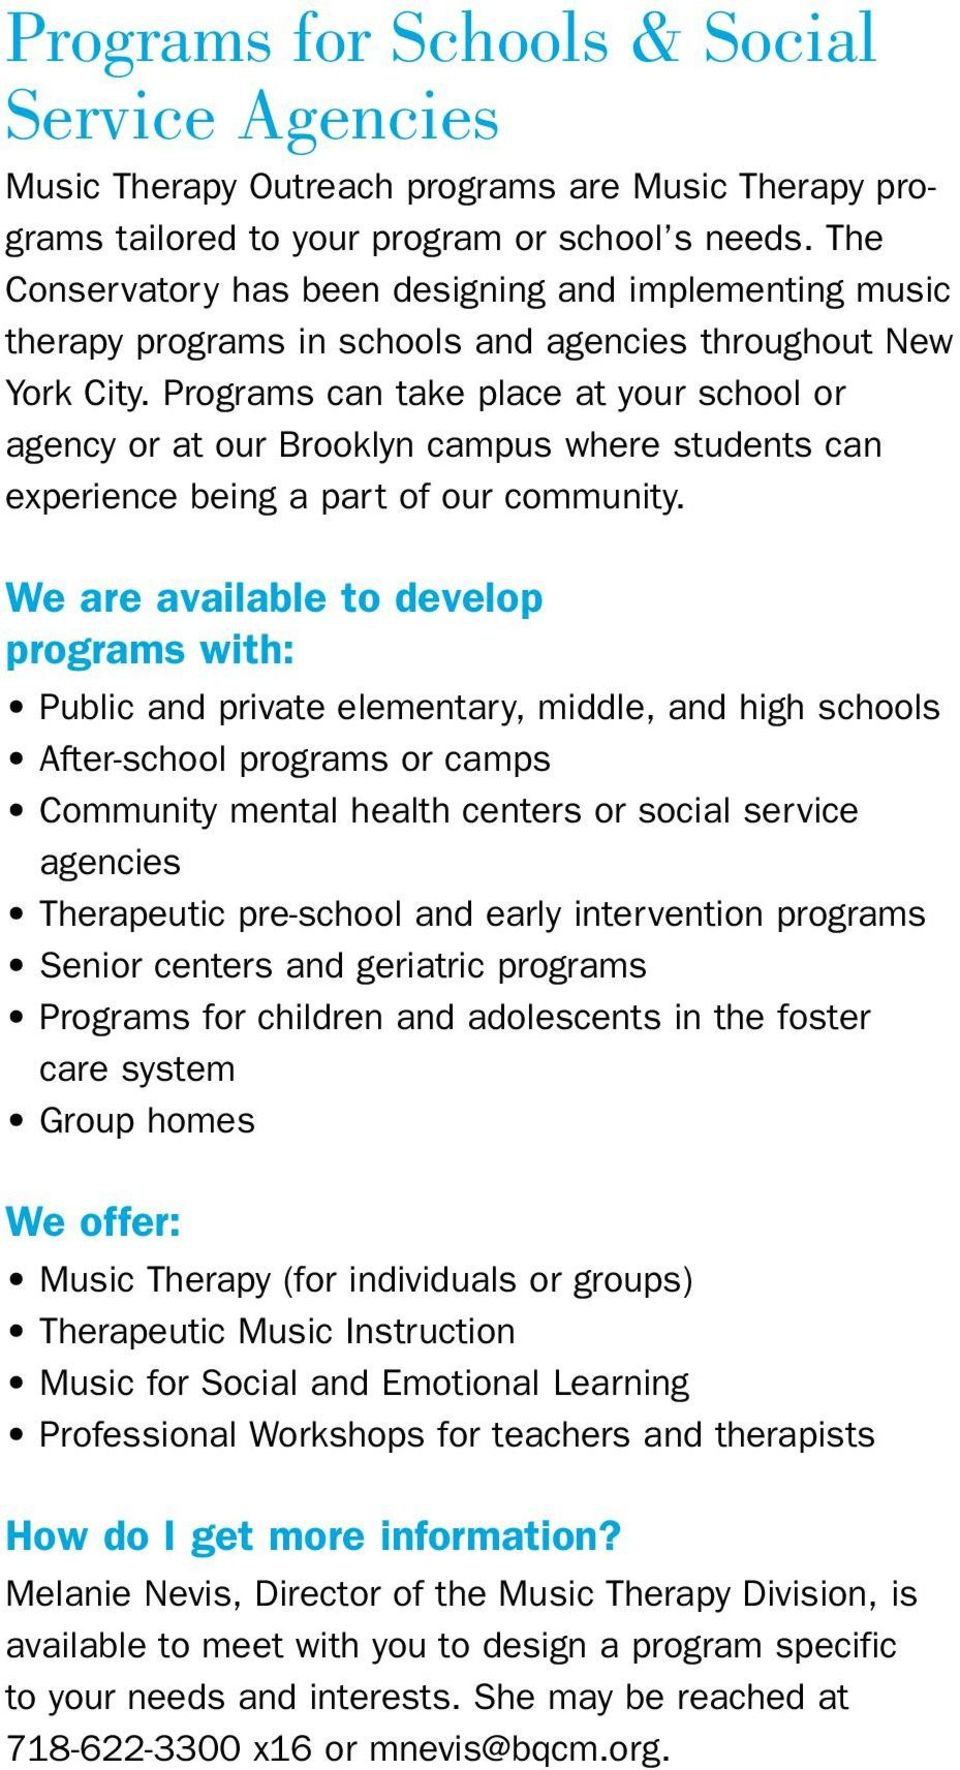 Programs can take place at your school or agency or at our Brooklyn campus where students can experience being a part of our community.